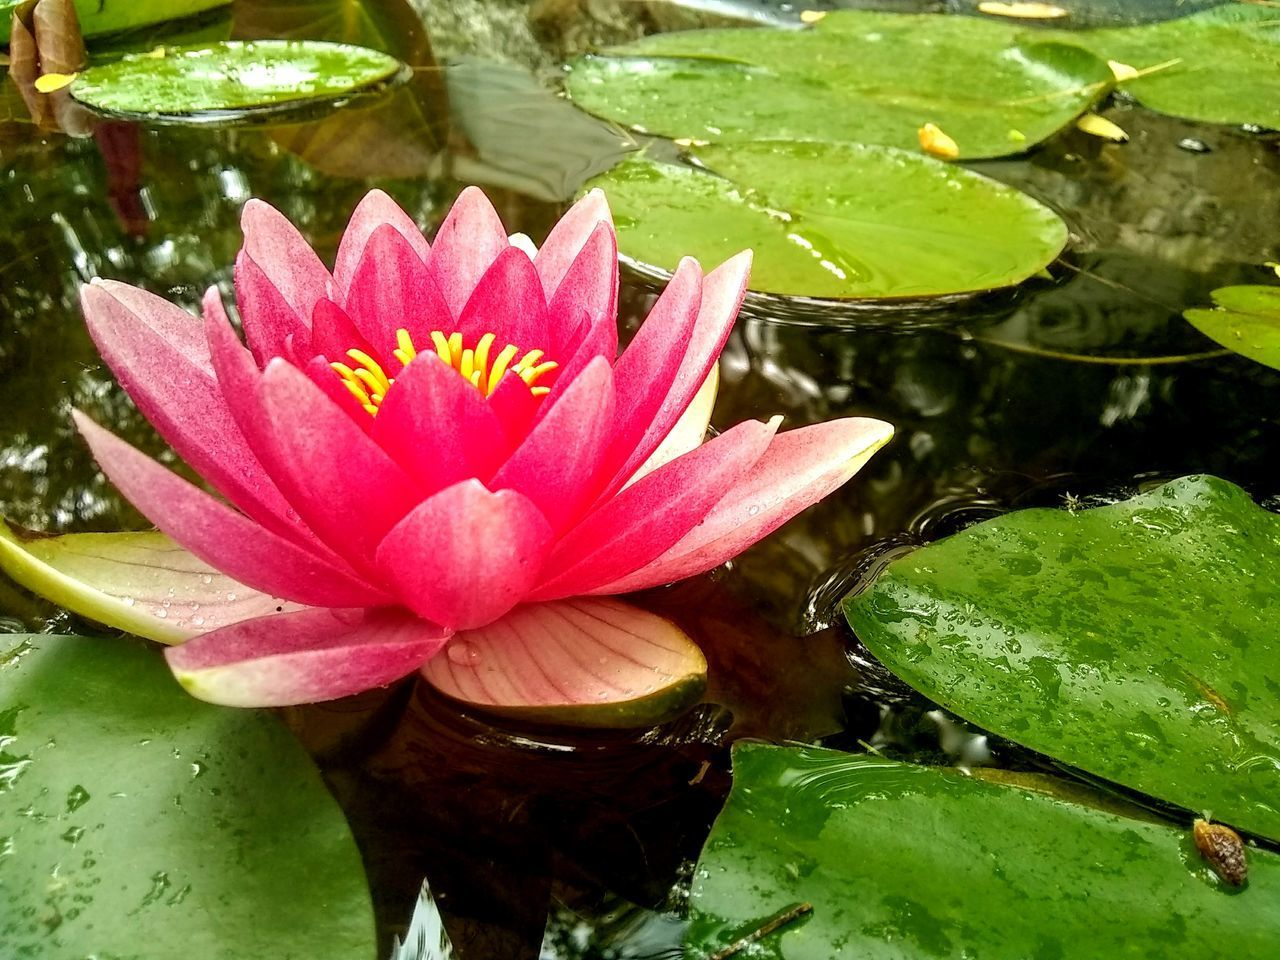 water, flower, beauty in nature, water lily, lake, flowering plant, plant, leaf, freshness, pink color, inflorescence, plant part, flower head, vulnerability, floating, growth, petal, fragility, floating on water, lotus water lily, no people, pollen, outdoors, leaves